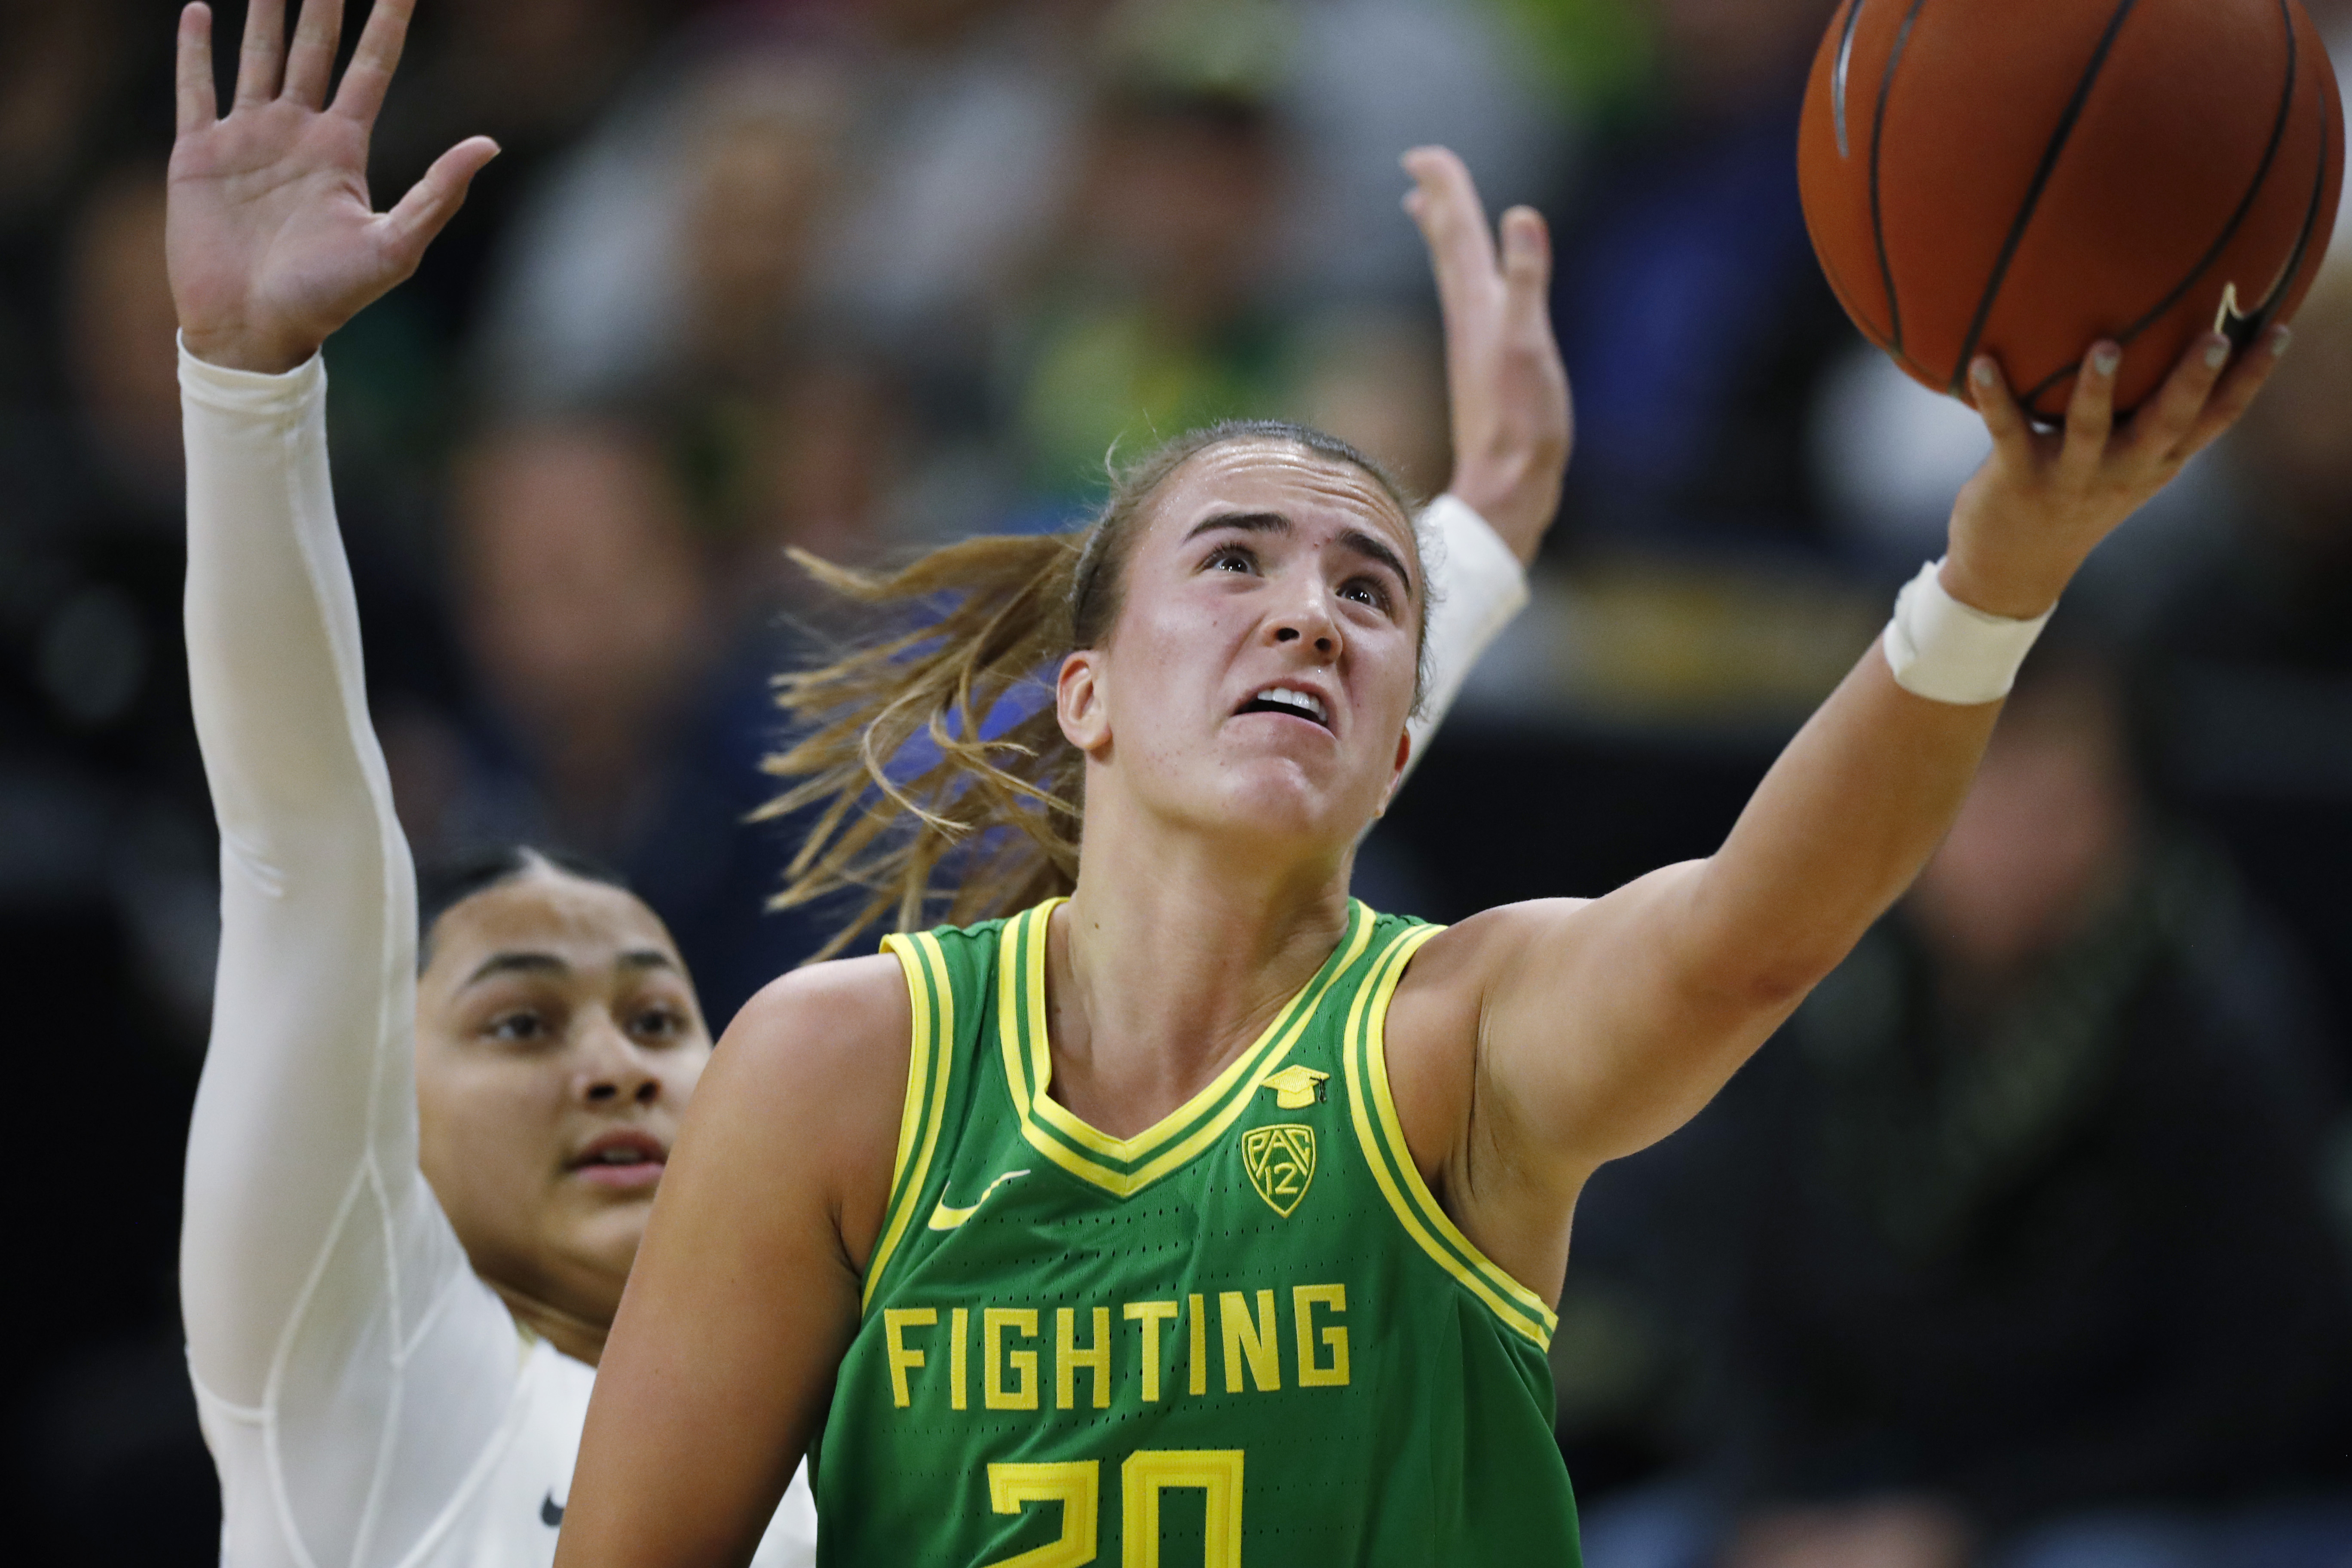 FILE - In this Feb. 1, 2020, file photo, Oregon guard Sabrina Ionescu, front, drives to the basket past Colorado guard Lesila Finau during the first half of an NCAA college basketball game in Boulder, Colo. Ionescu and Iowa wrestler Spencer Lee shared the Sullivan Award on Wednesday night, April 29, as the country's top amateur athlete. (AP Photo/David Zalubowski, File)